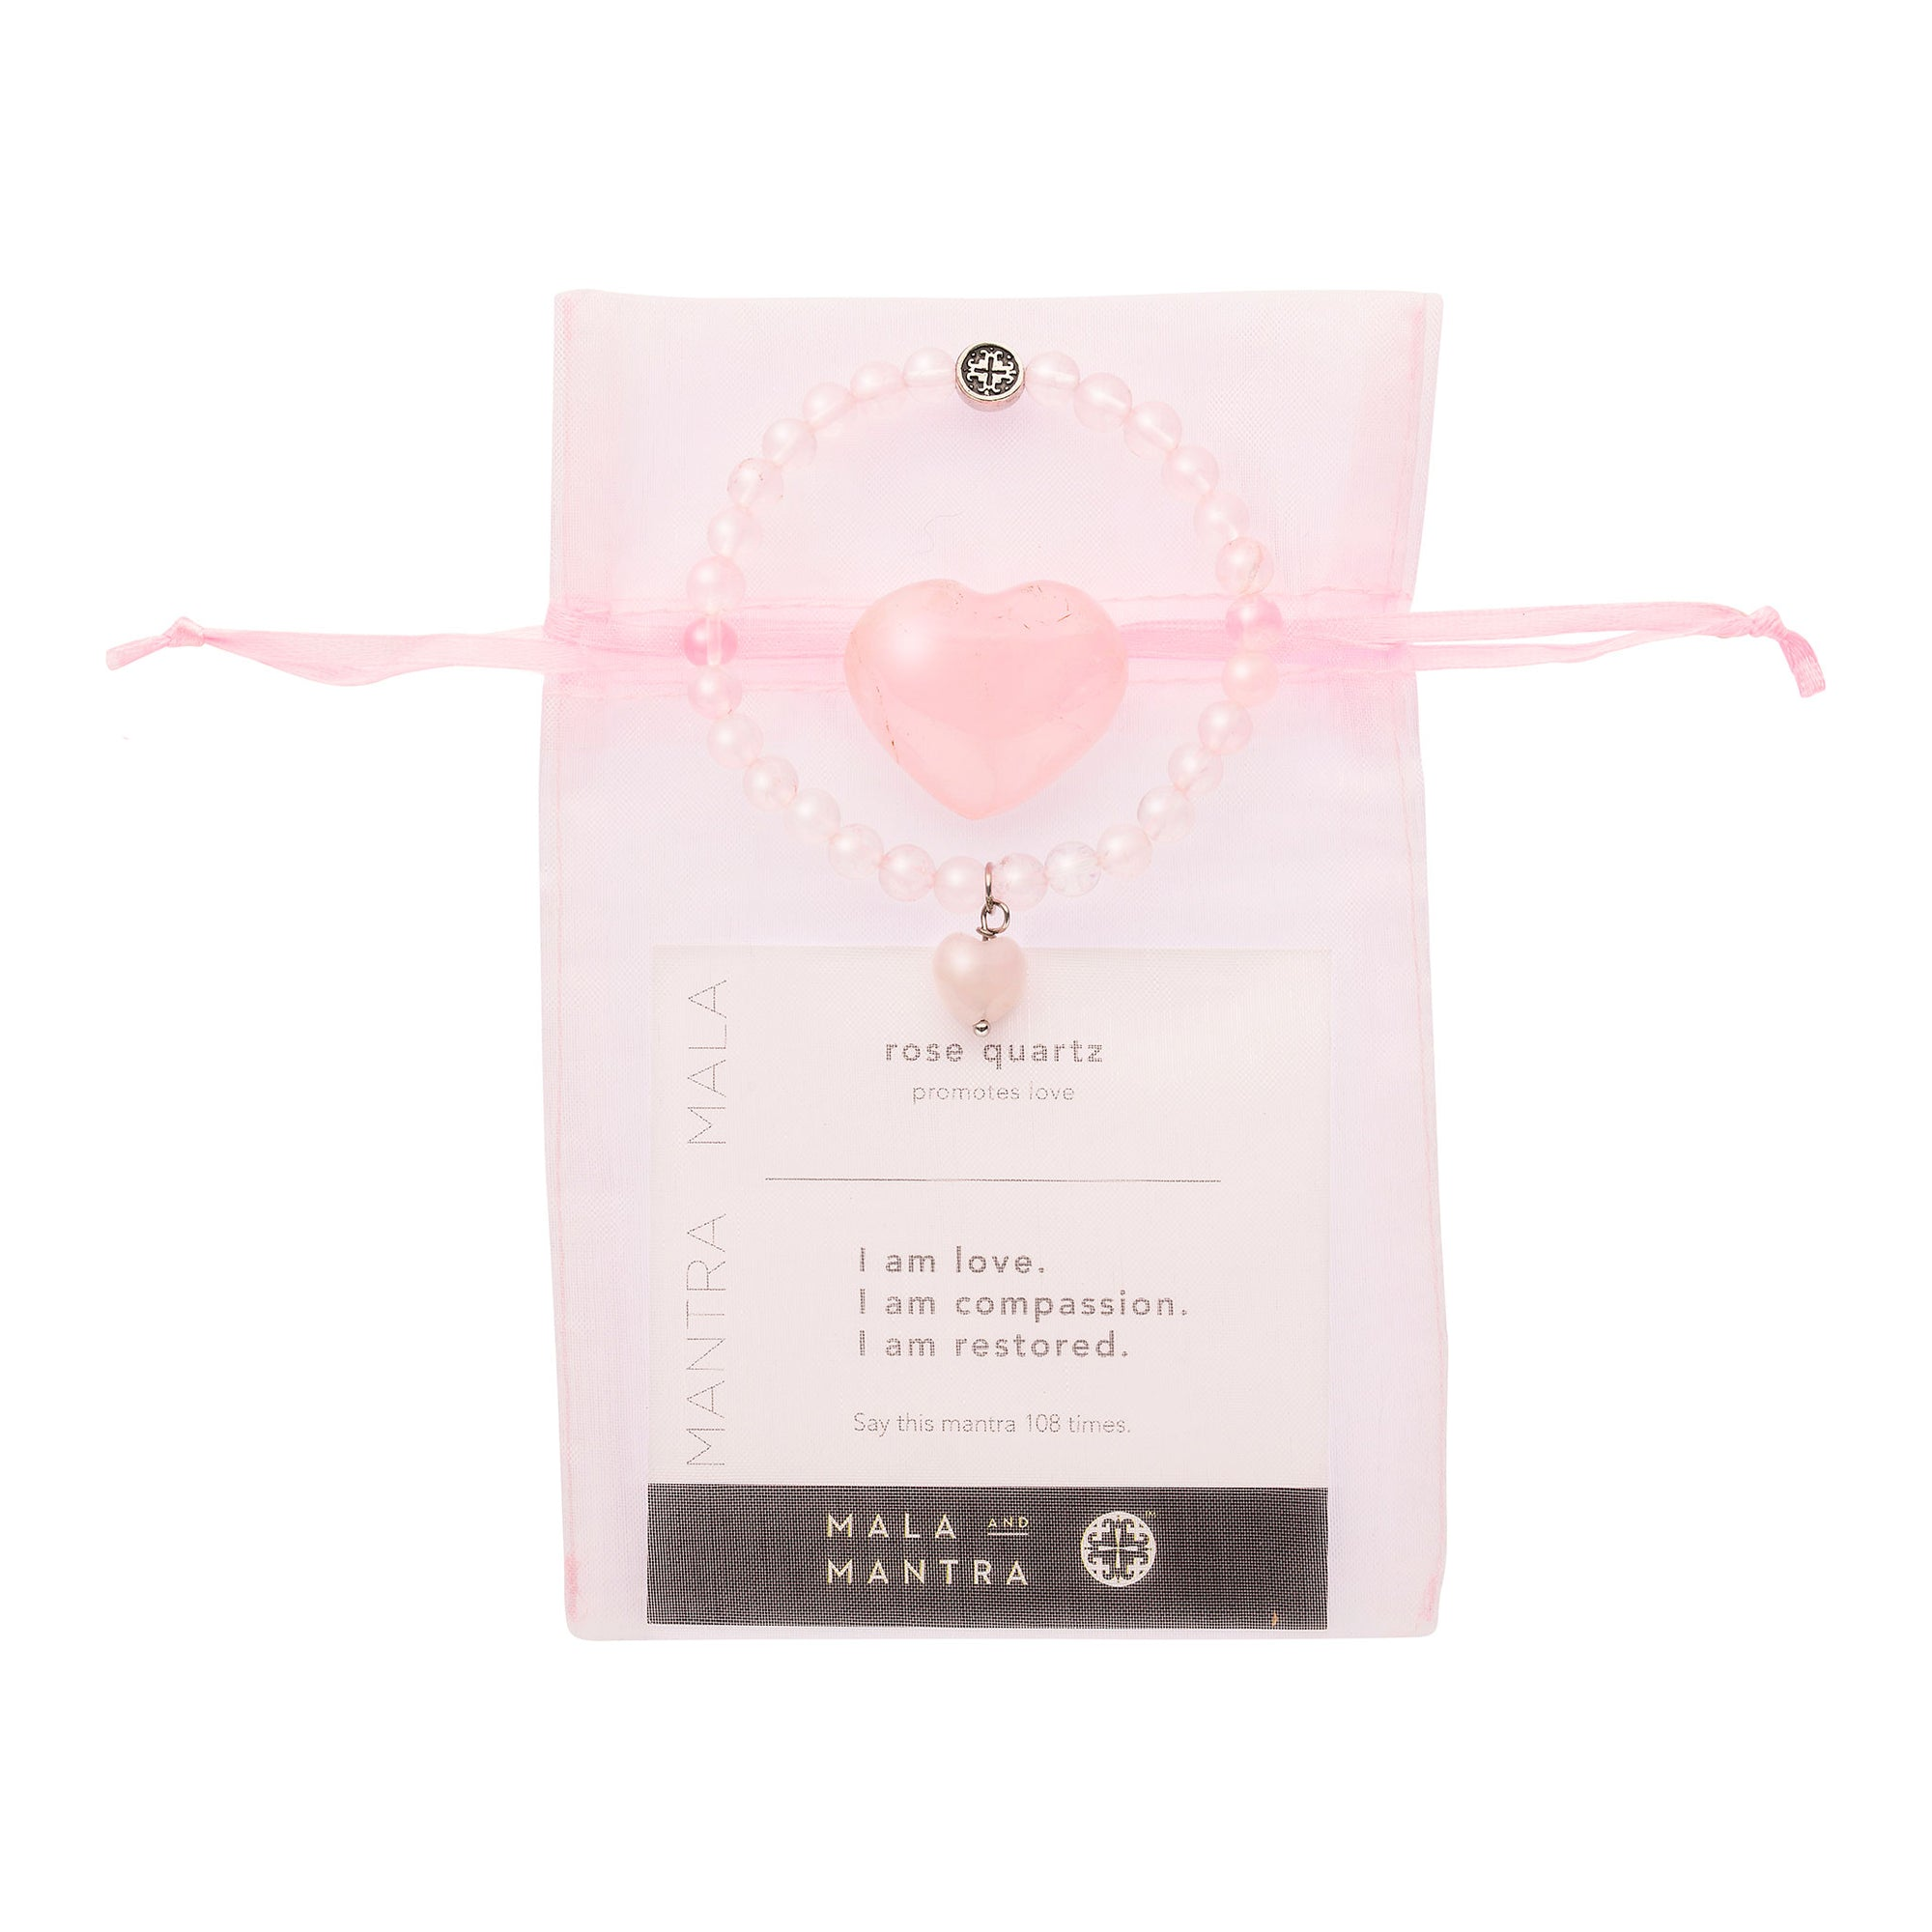 BE LOVE: Rose Quartz Stretch Bracelet with Rose Quartz Heart Charm + Rose Quartz Heart Stone Gift Set